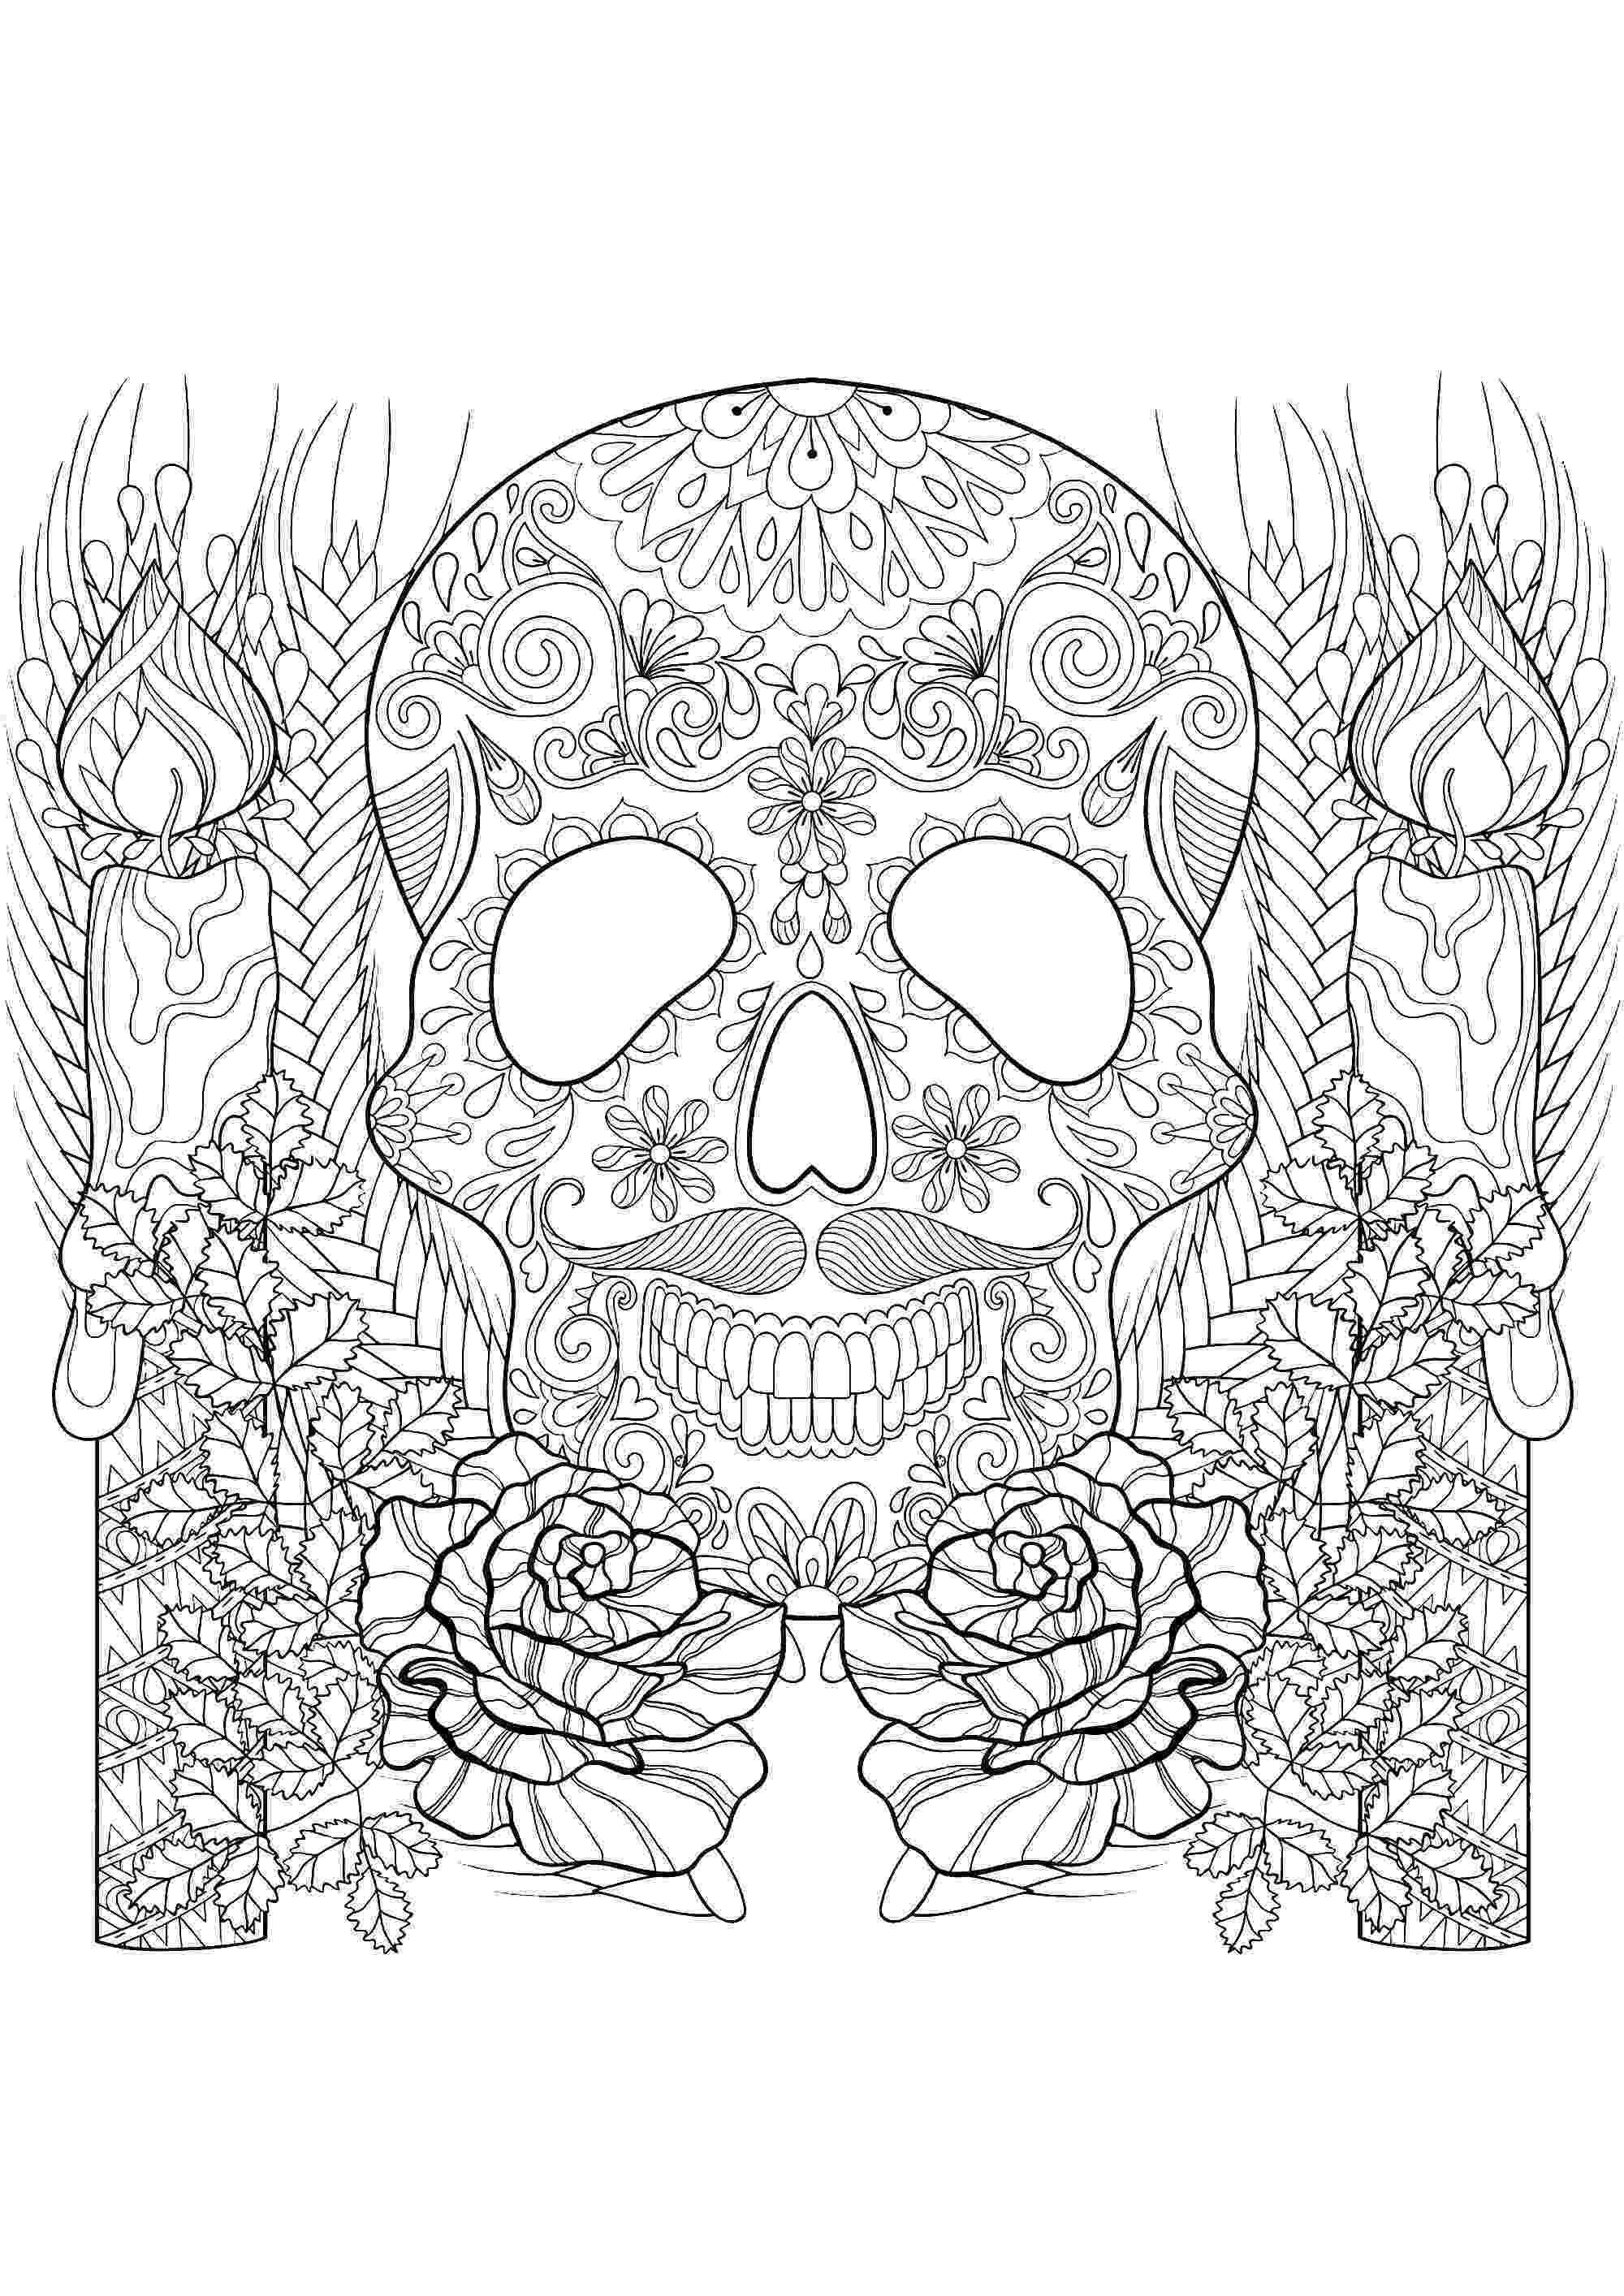 colouring pages for adults print skull and candles halloween adult coloring pages colouring adults for print pages